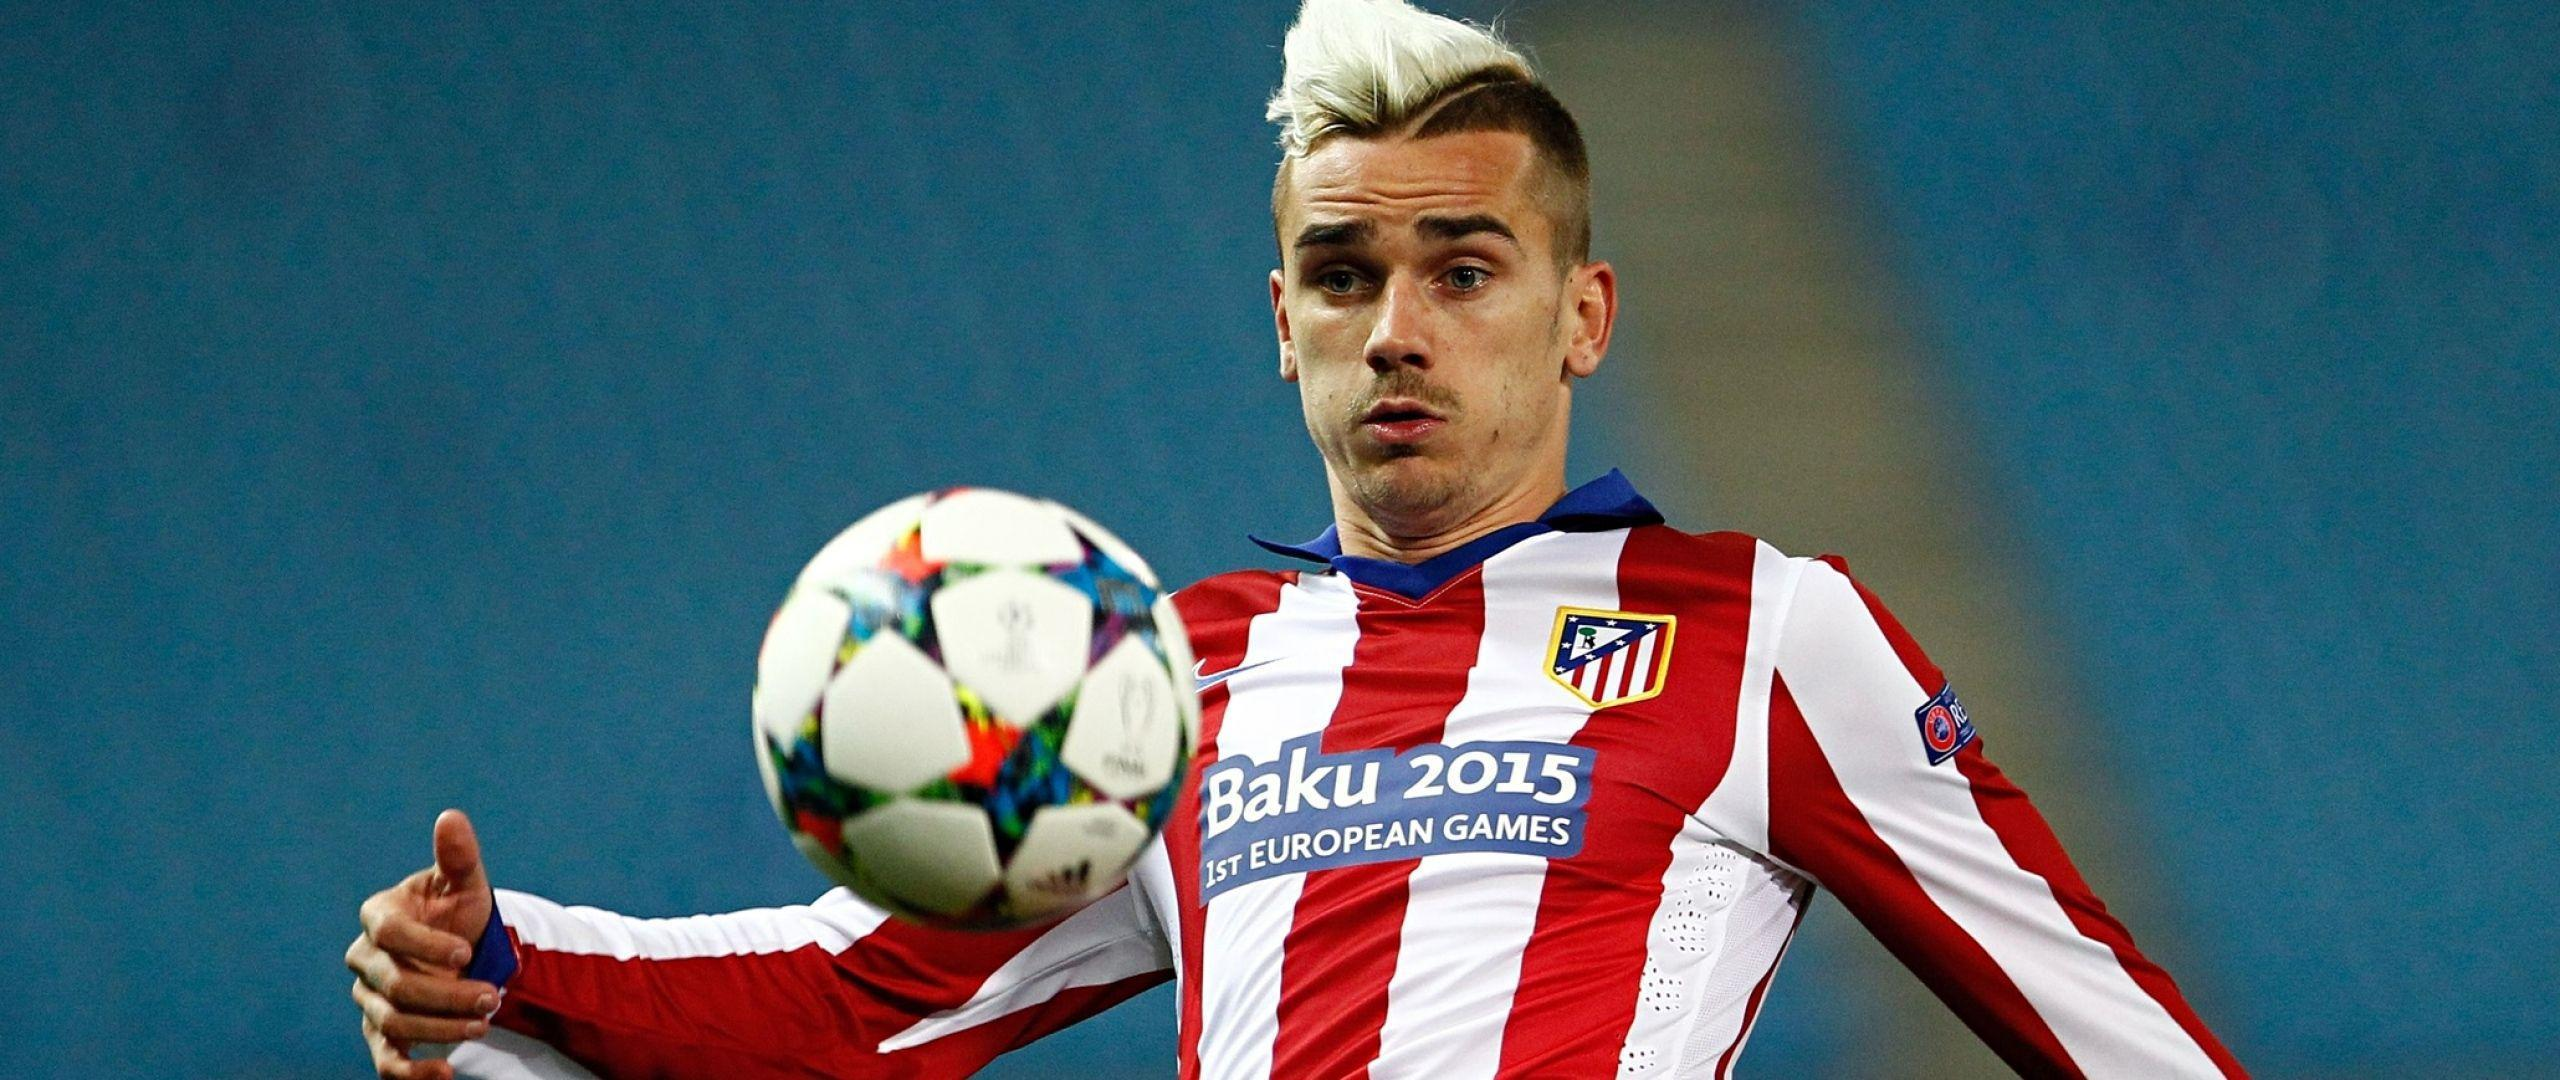 Download Wallpaper 2560x1080 Antoine griezmann, Football player ...